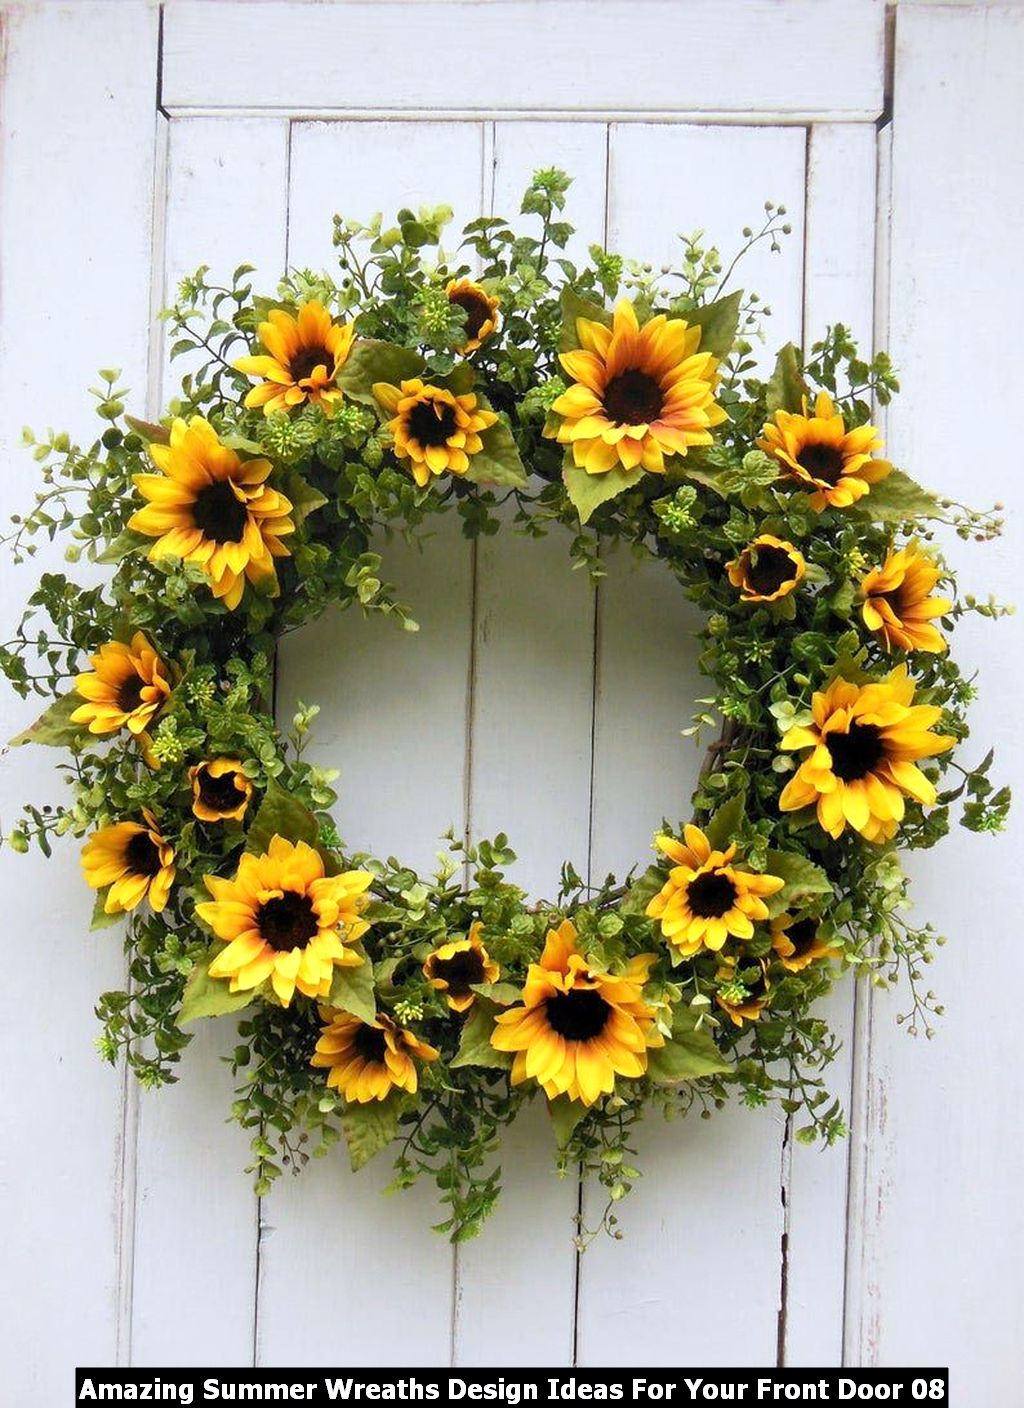 Amazing Summer Wreaths Design Ideas For Your Front Door 08